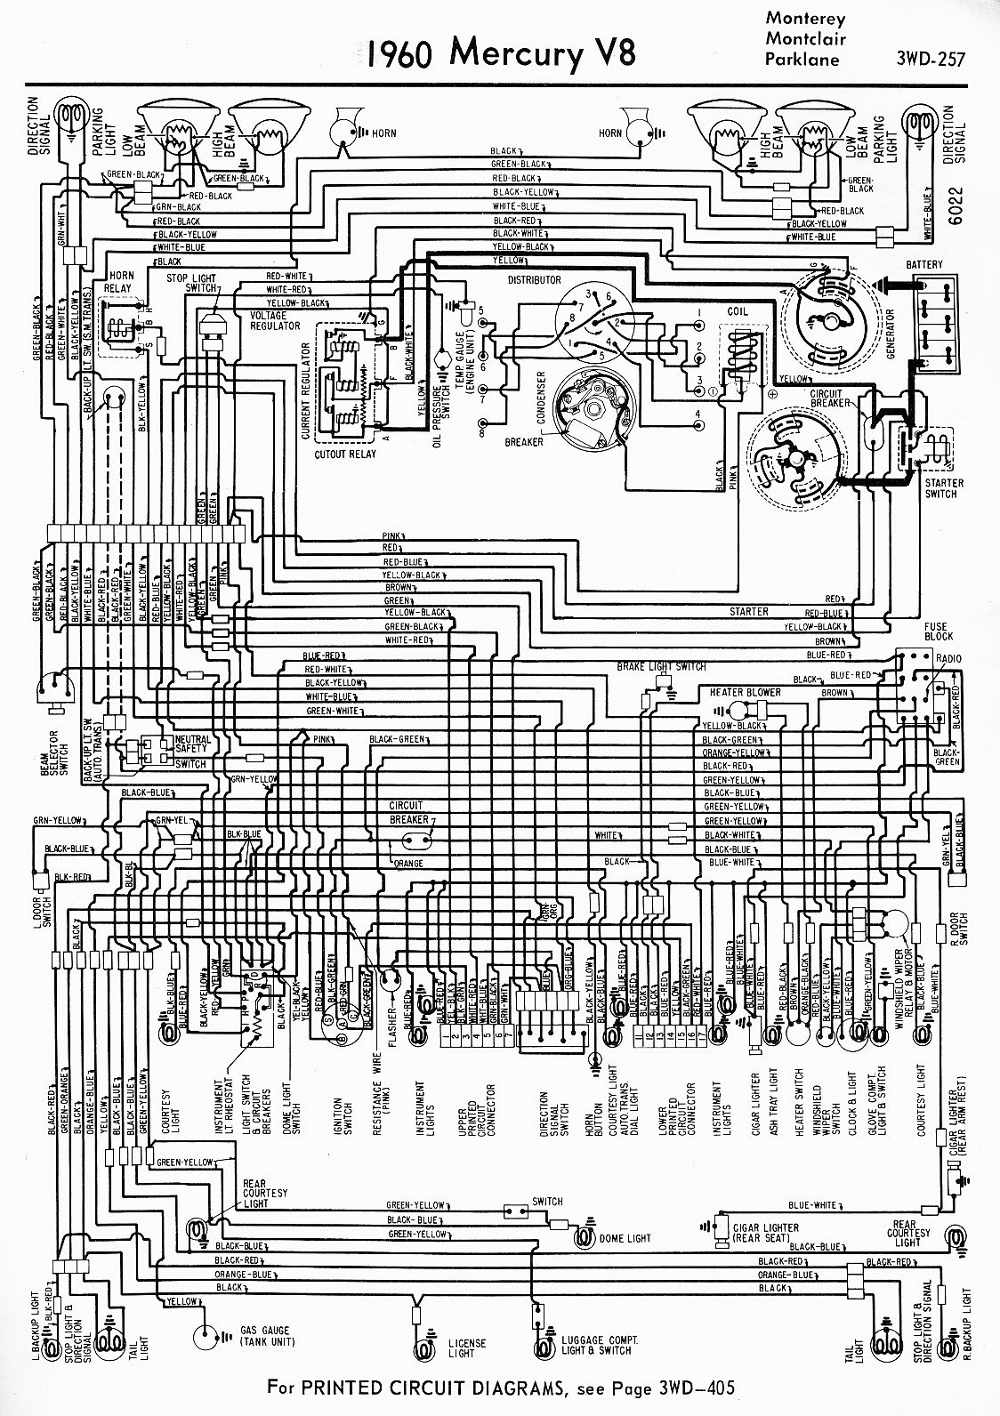 1956 mercury monterey wiring diagram circuit diagram symbols \u2022 1954 mercury pick up resto mod 1965 mercury parklane wiring diagram circuit diagram symbols u2022 rh veturecapitaltrust co 1956 mercury montclair 1954 mercury monterey